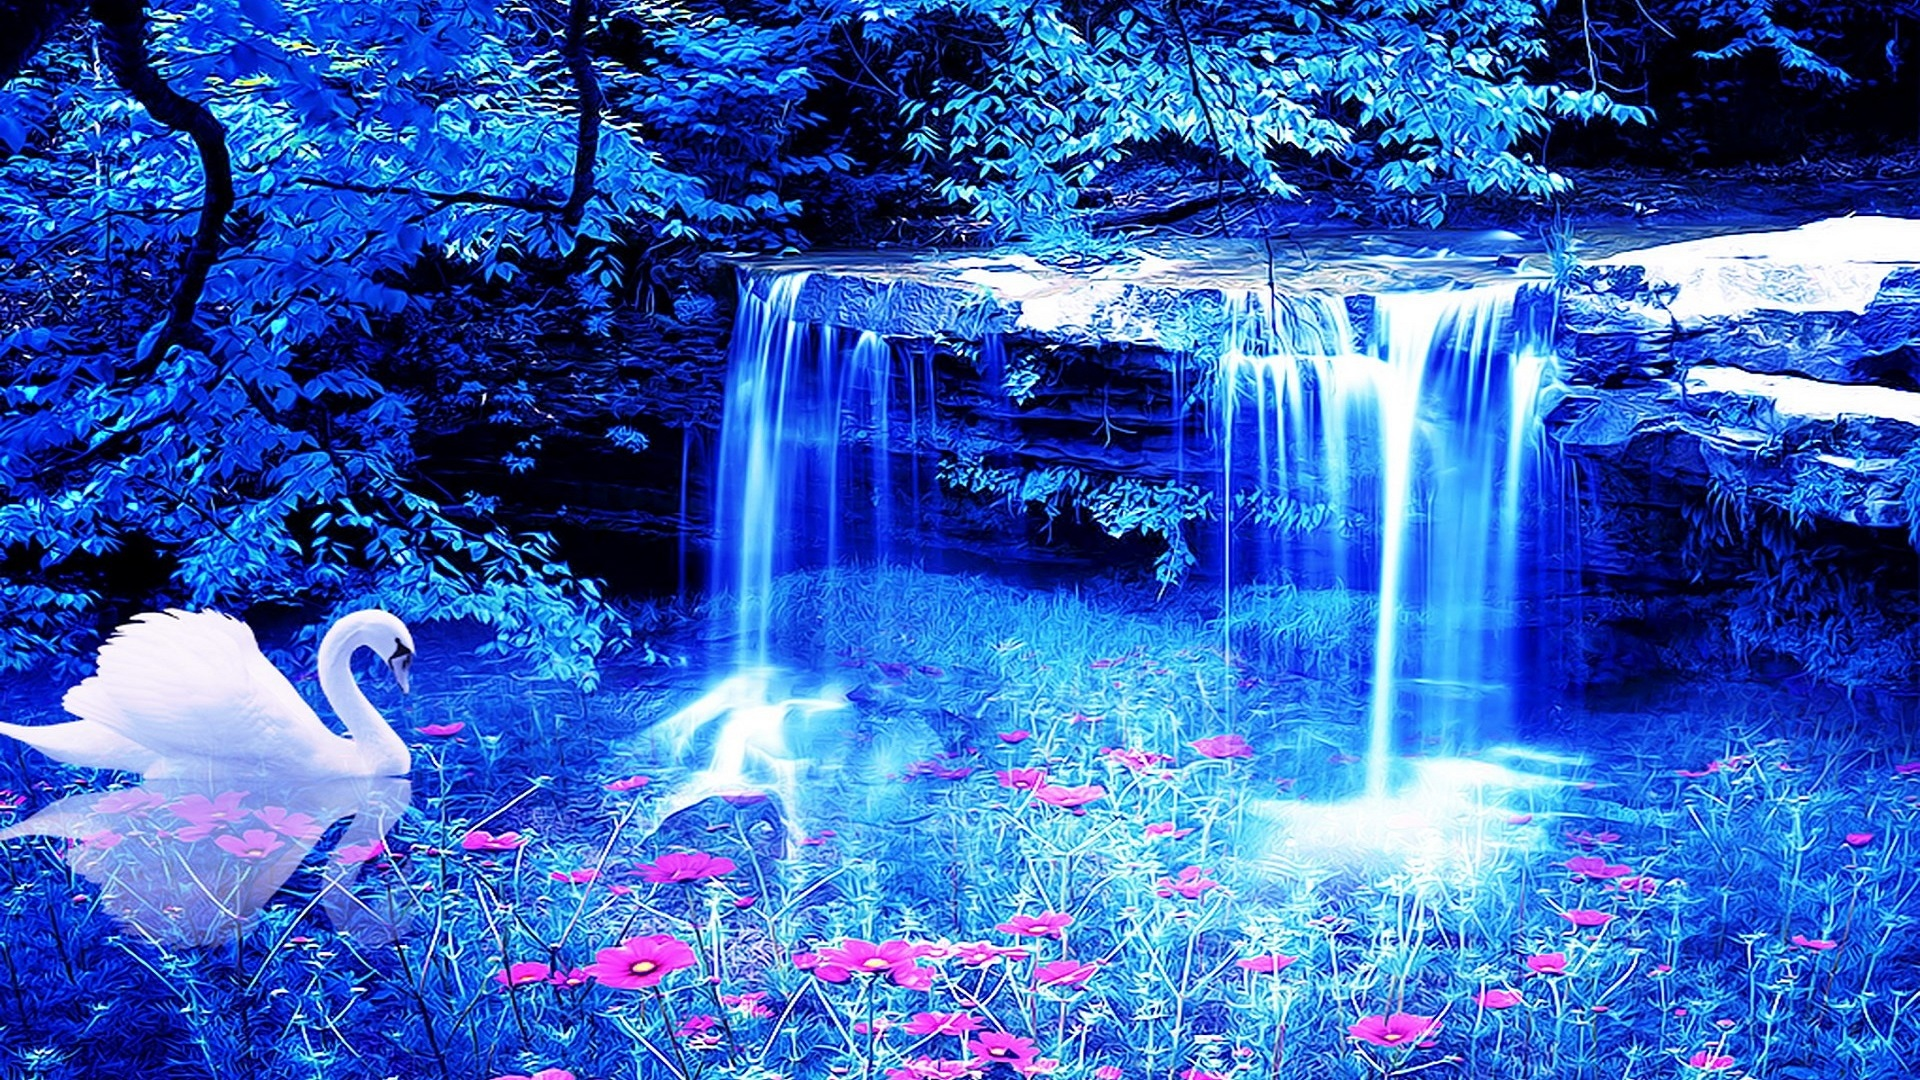 Beautiful Waterfalls Hd Wallpaper Background Free For Desktop